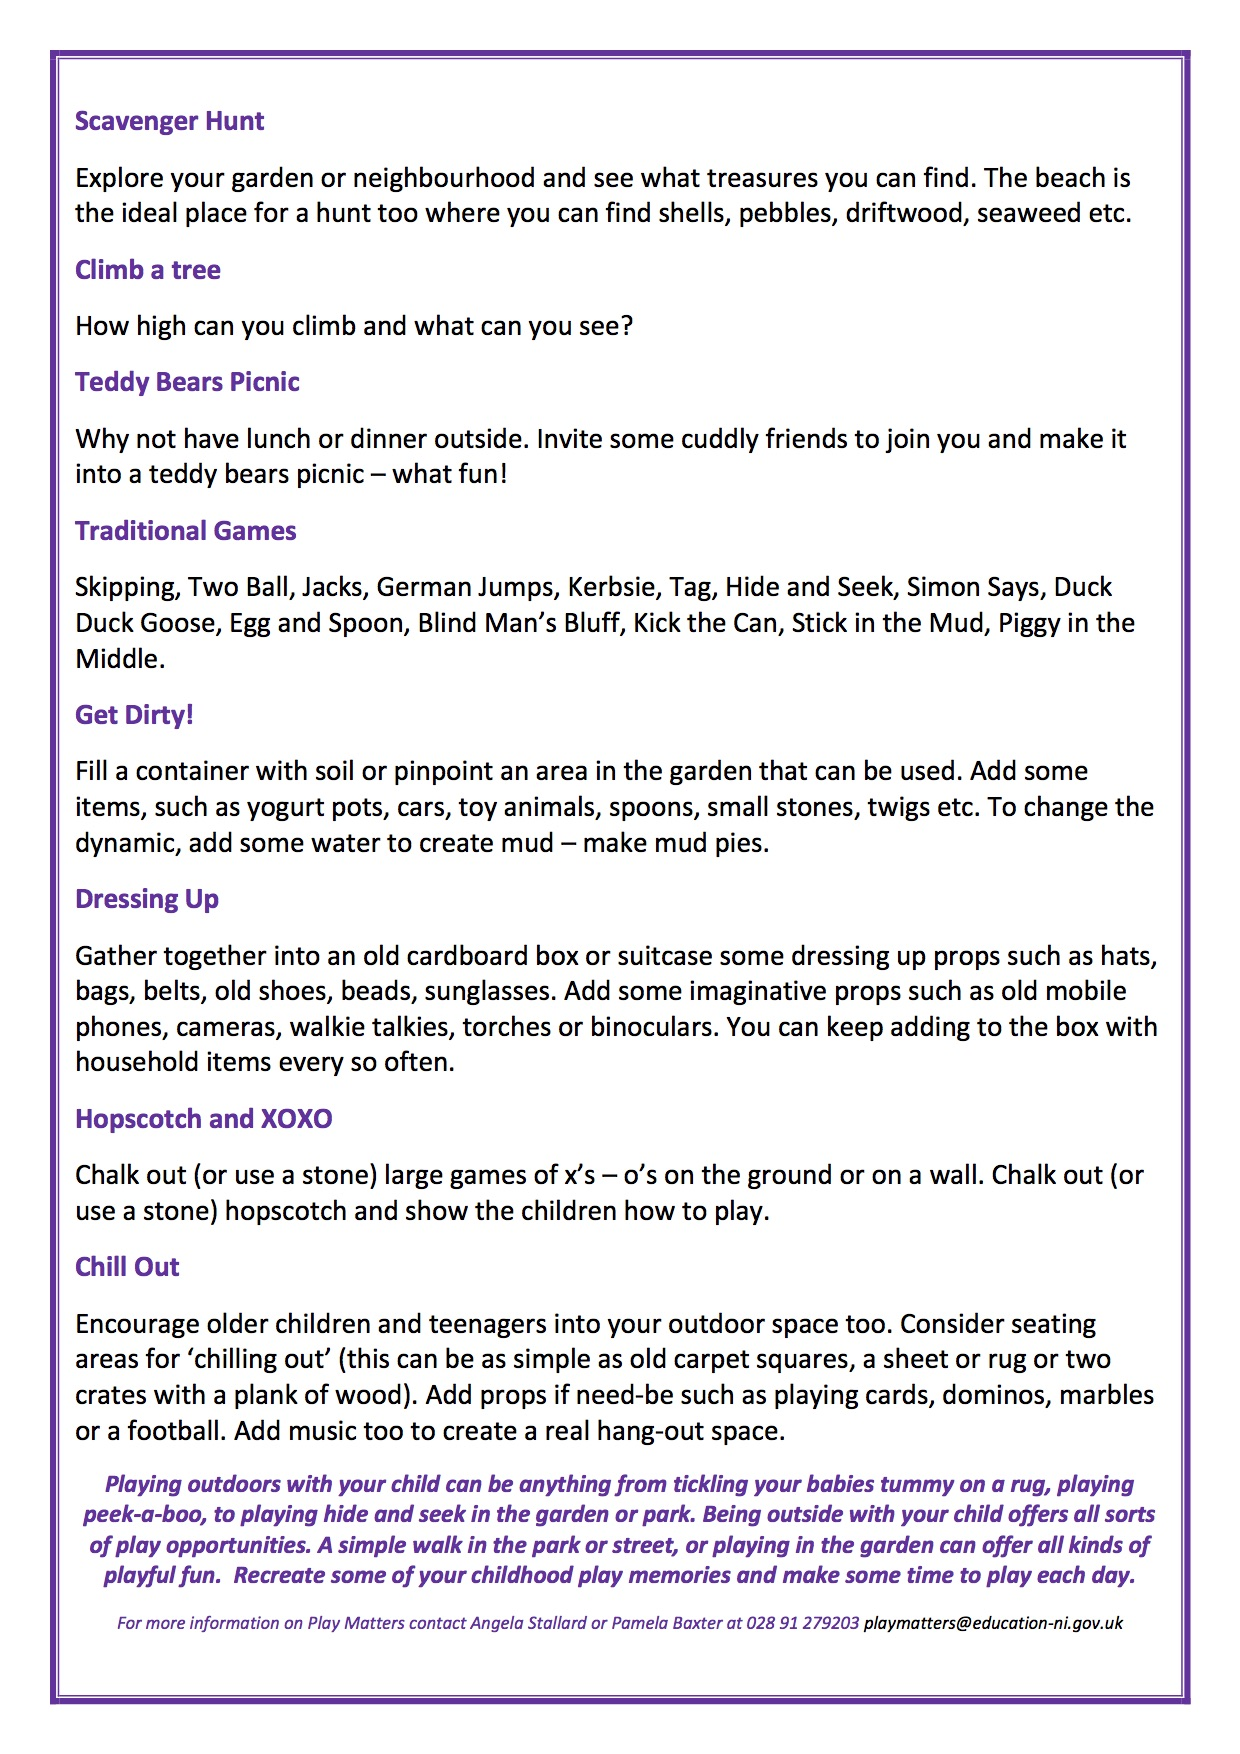 OUTDOOR FUN IN THE SUN - PLAY MATTERS page 2